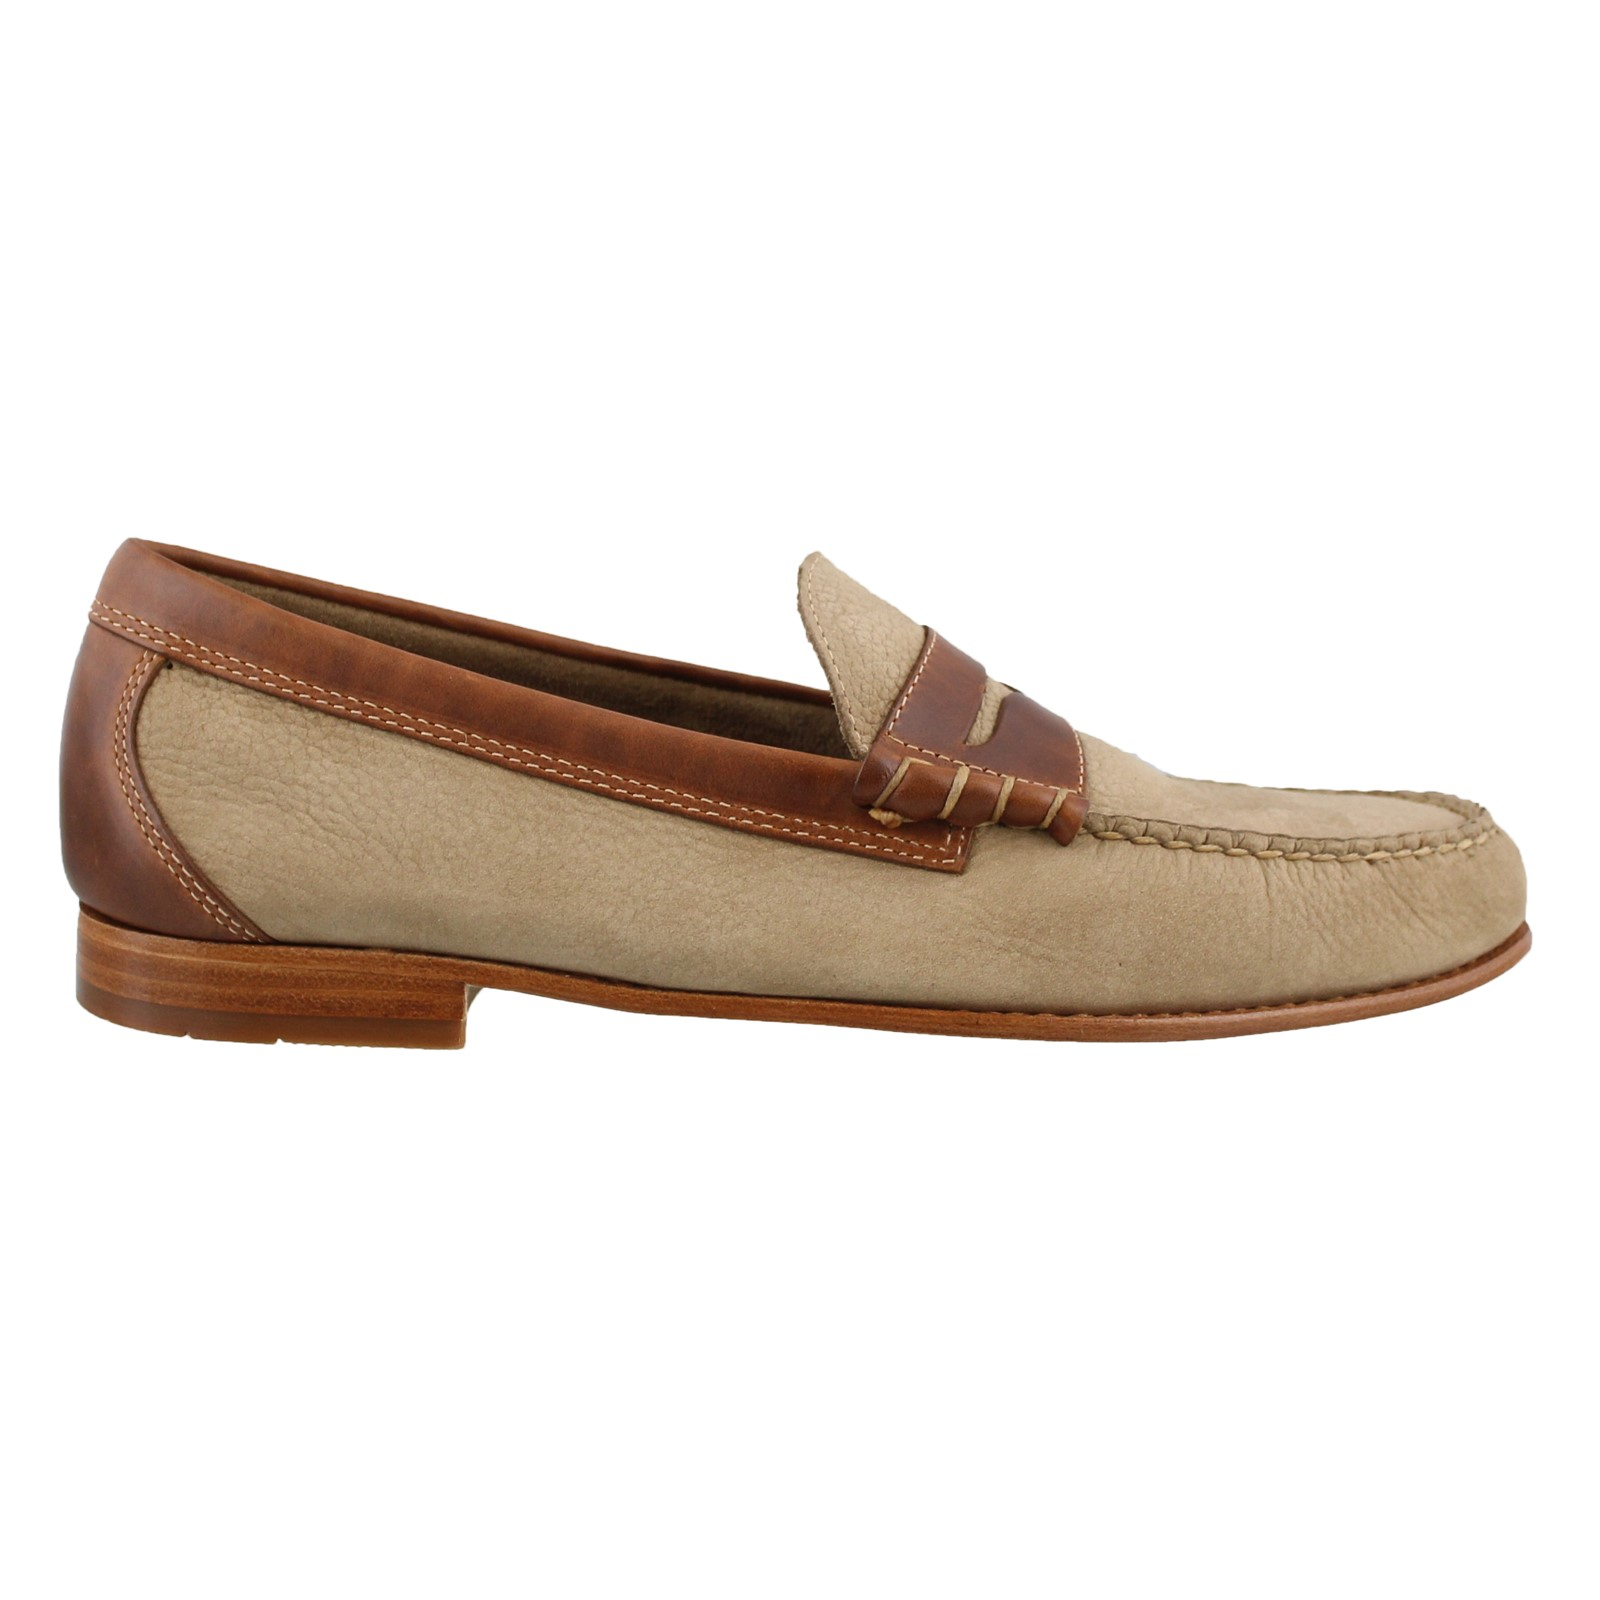 Men's GH Bass and Co, Lambert Weejuns Penny Loafers ...